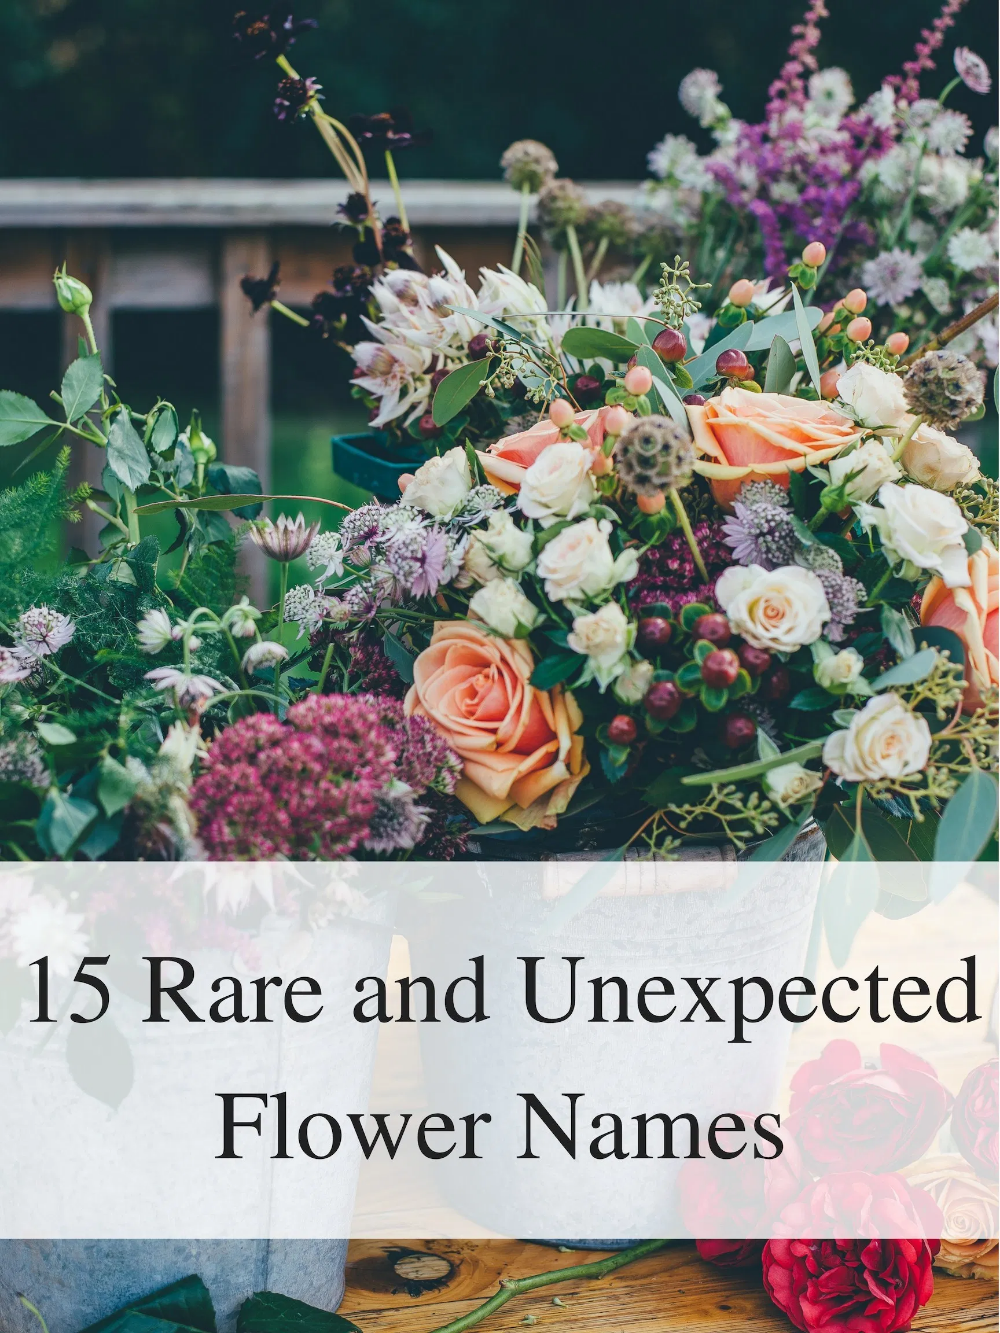 Rare and Unexpected Flower Names Flower names, Beautiful